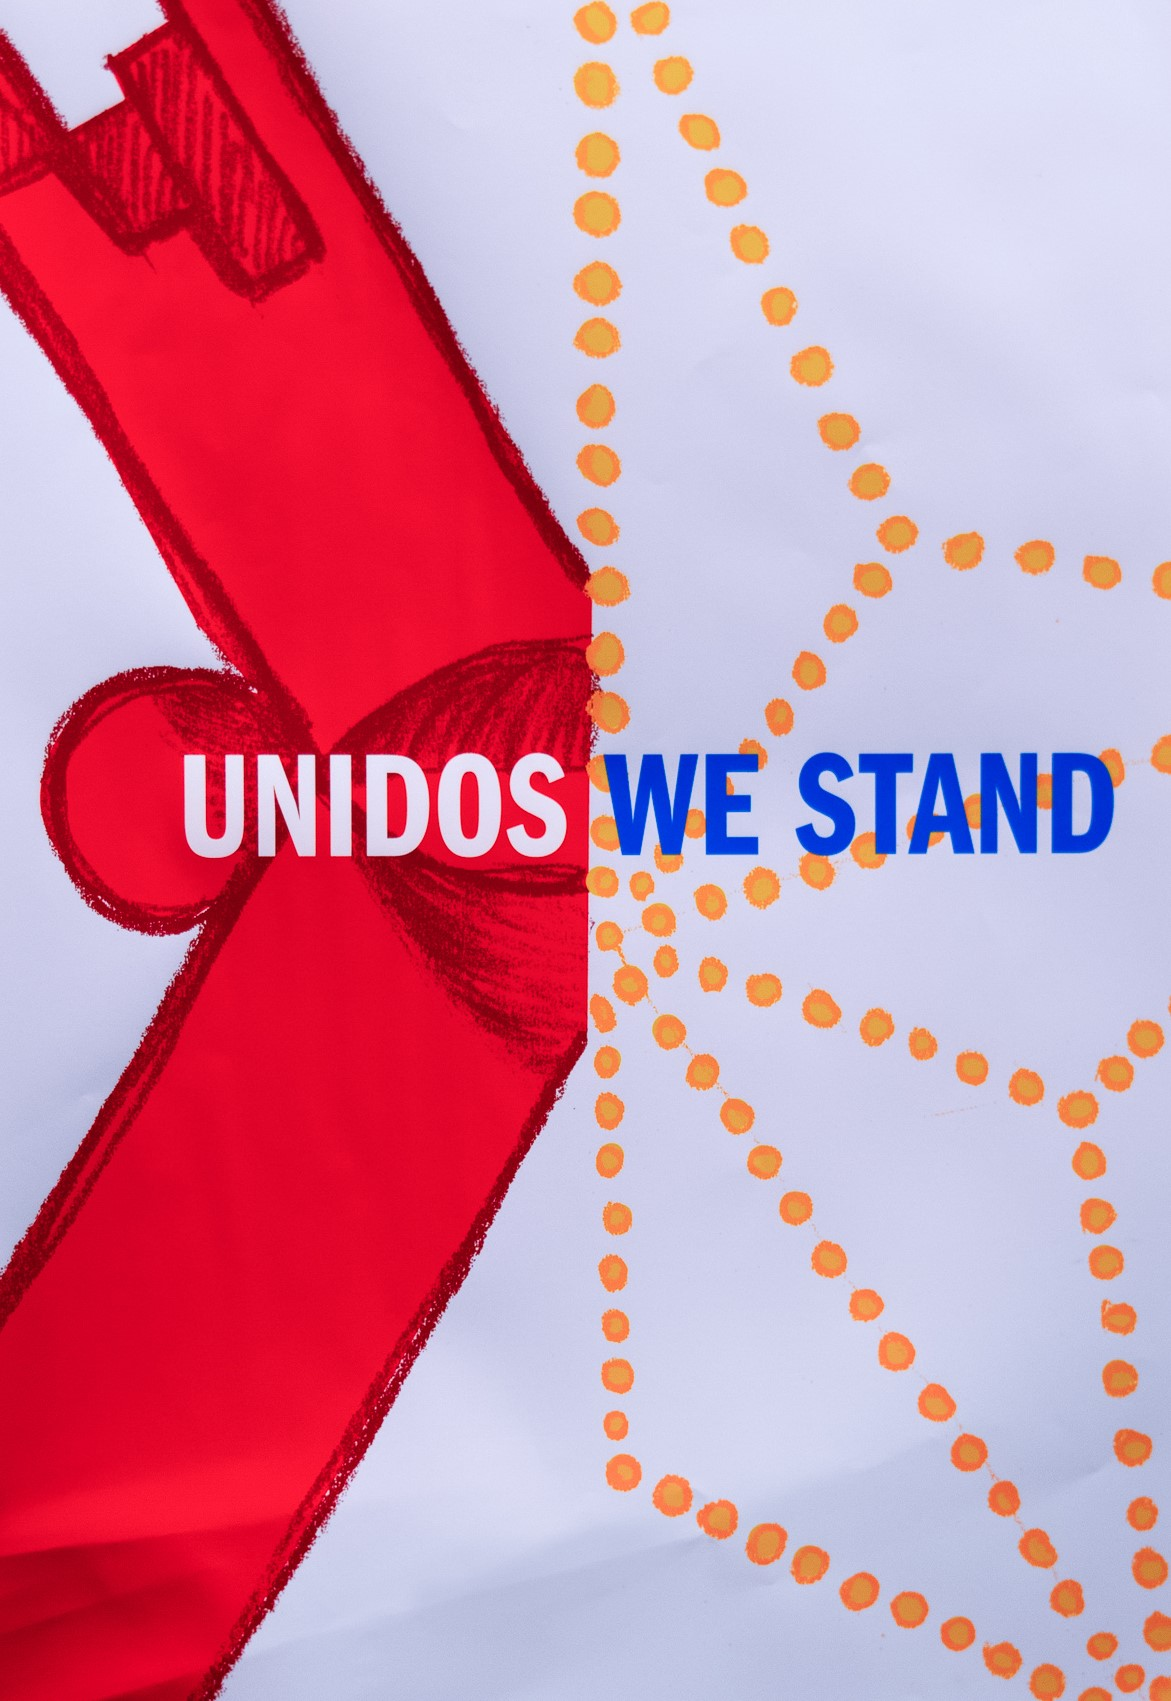 Unidos We Stand